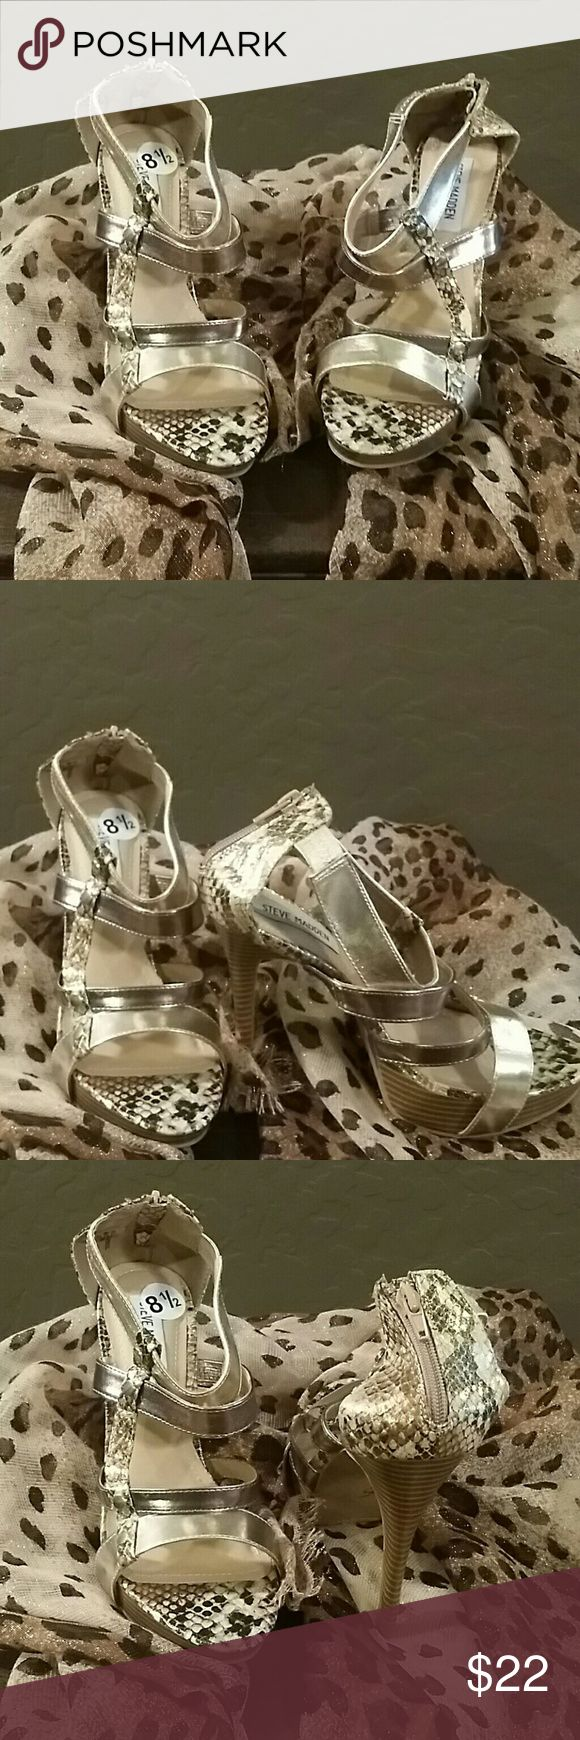 "NEW * Steve Madden * Beautiful * Animal Print High Heels * Black/Gold * 5"" Heels Steve Madden Shoes Heels"